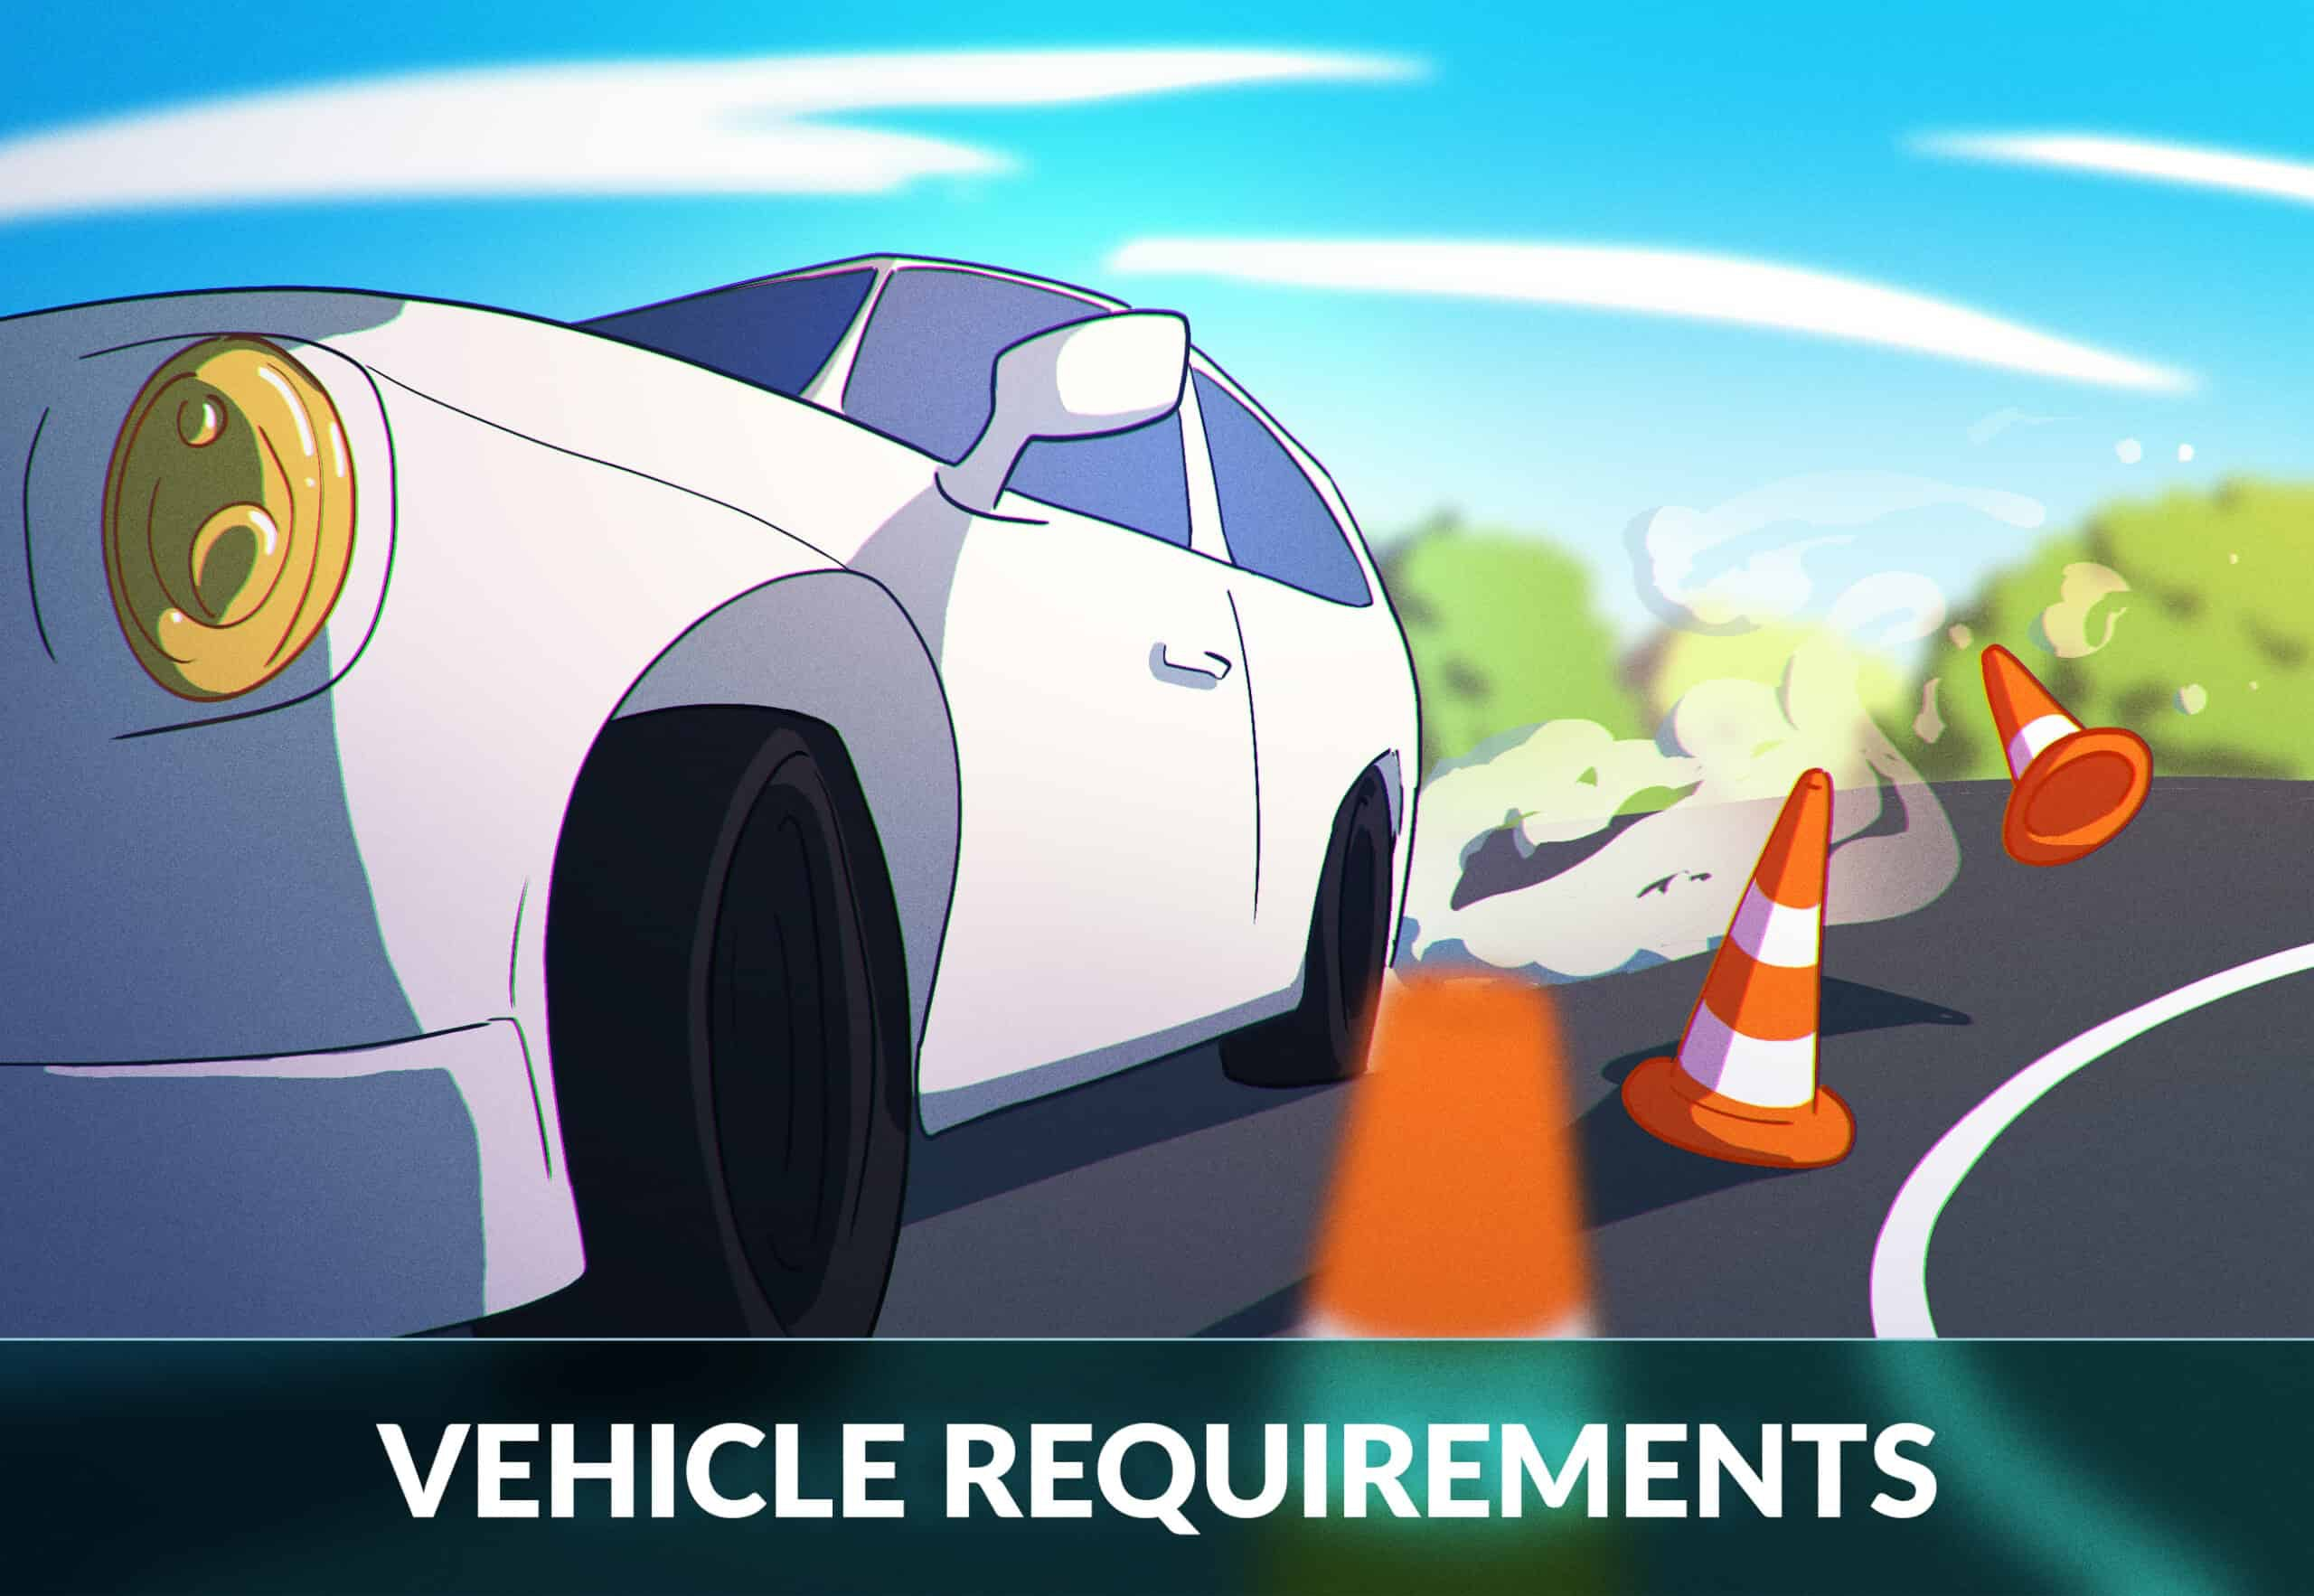 Vehicle requirements for the dmv road test